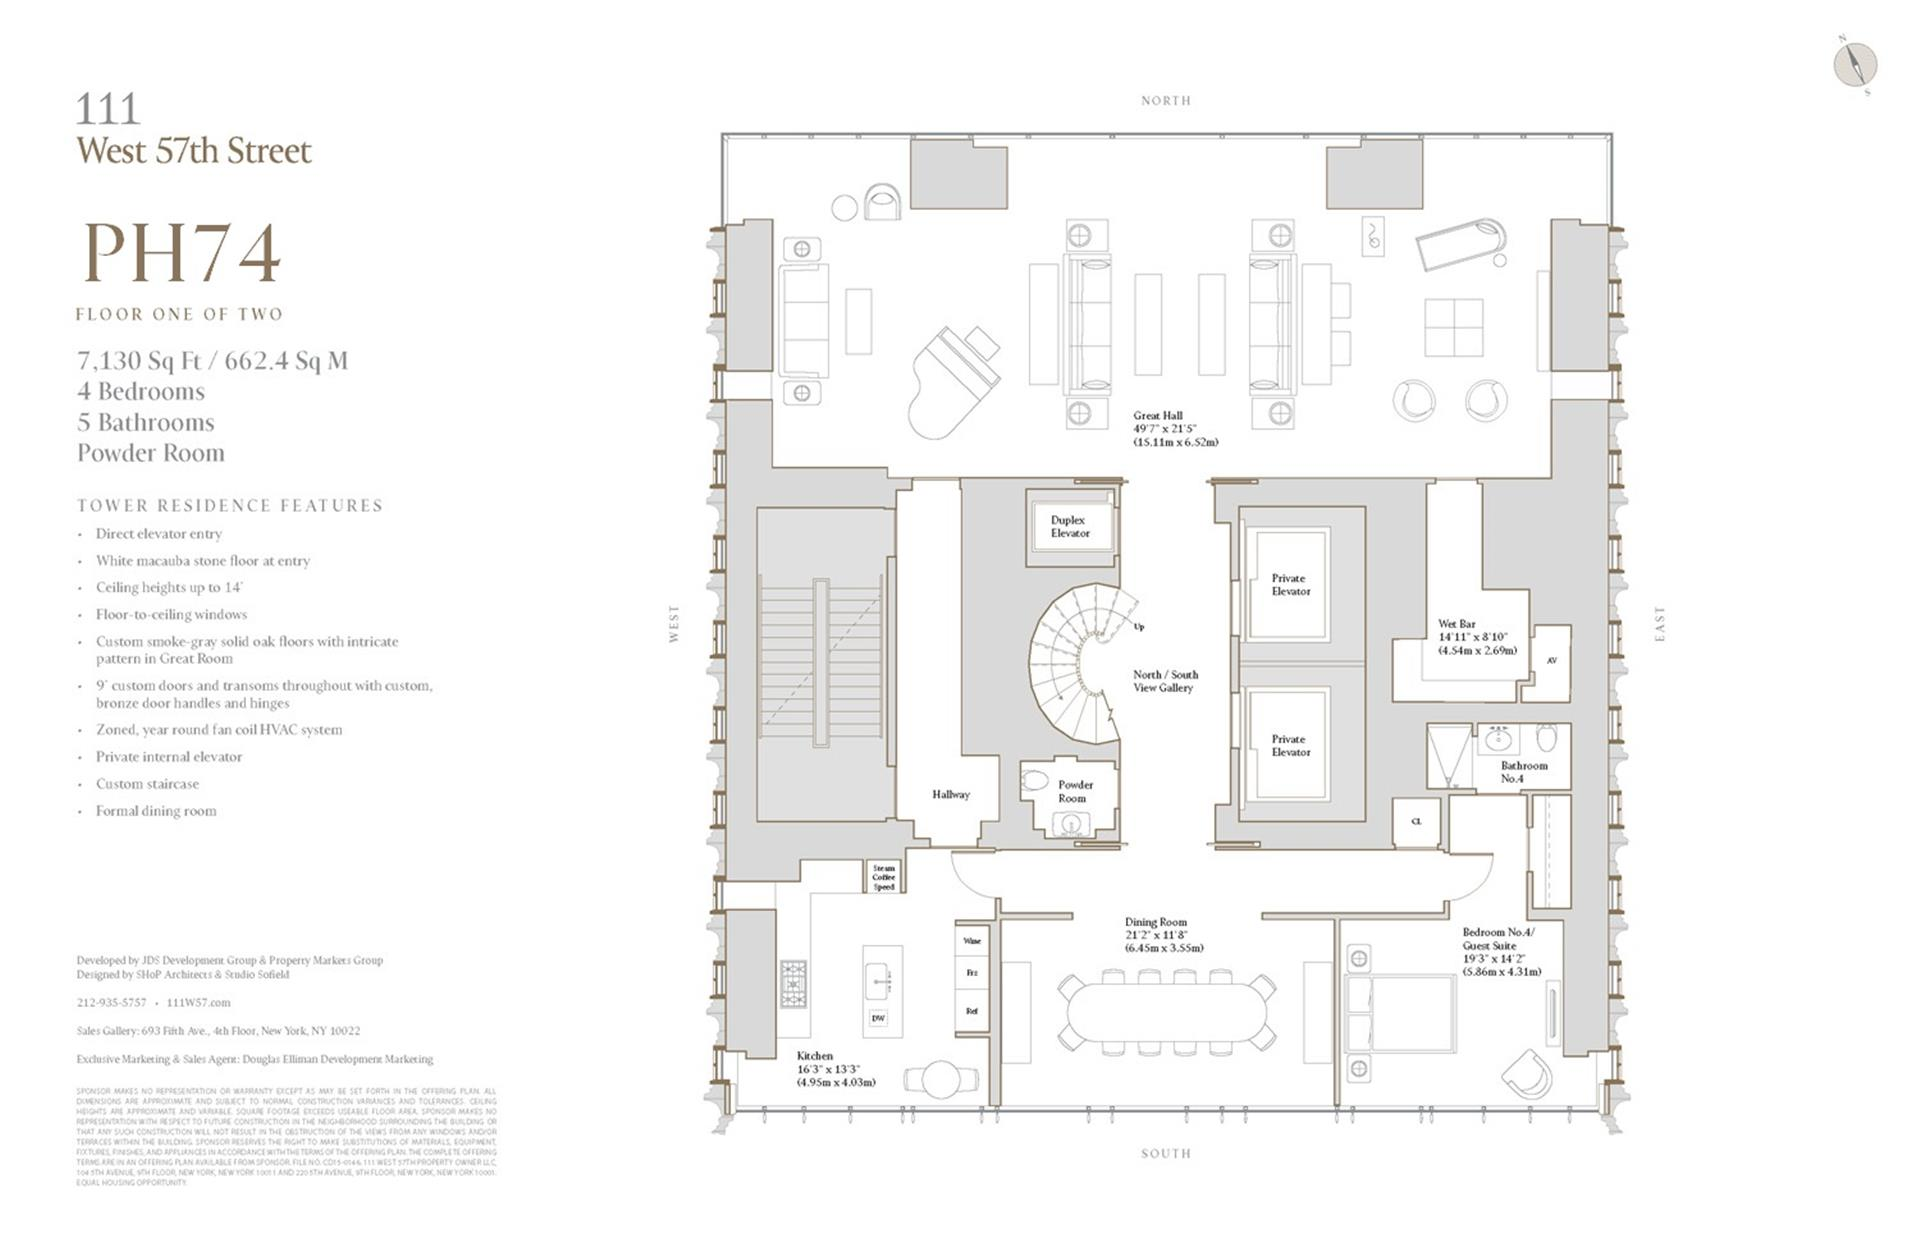 Floor plan of 111 West 57th Street, PH74 - Central Park South, New York